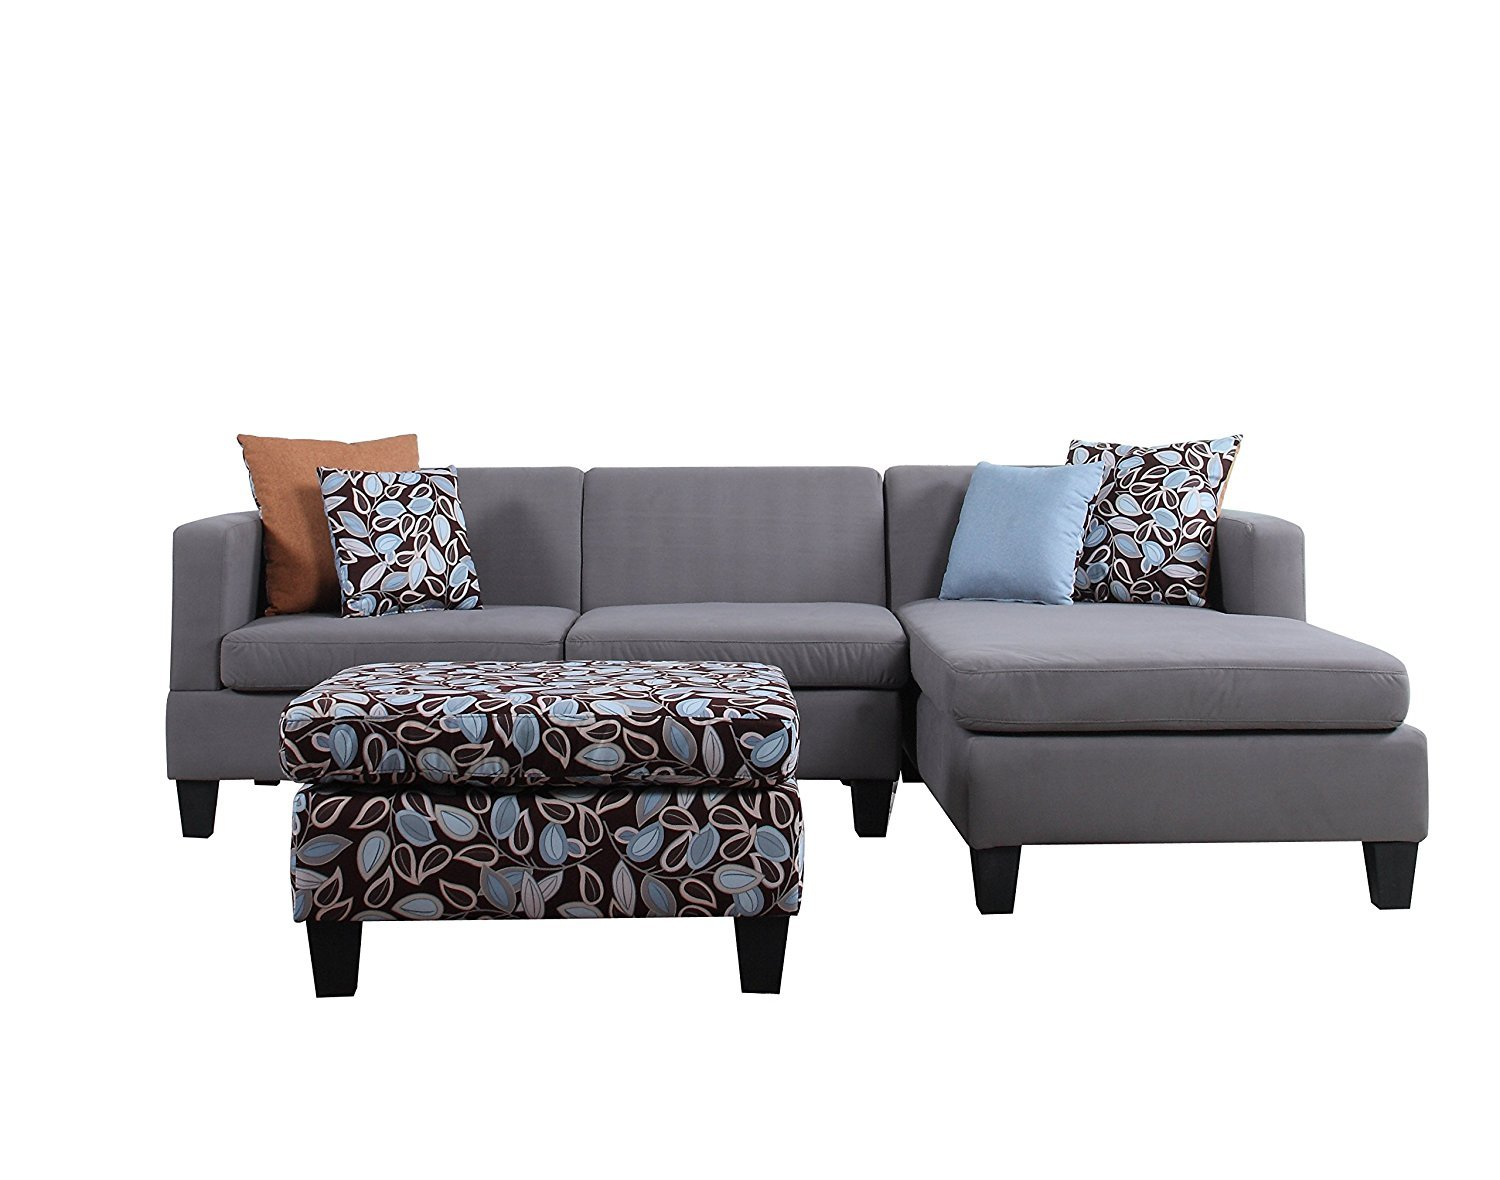 Sofa Set Covers For L Shape Couch Covers L Shaped Home Furniture Design